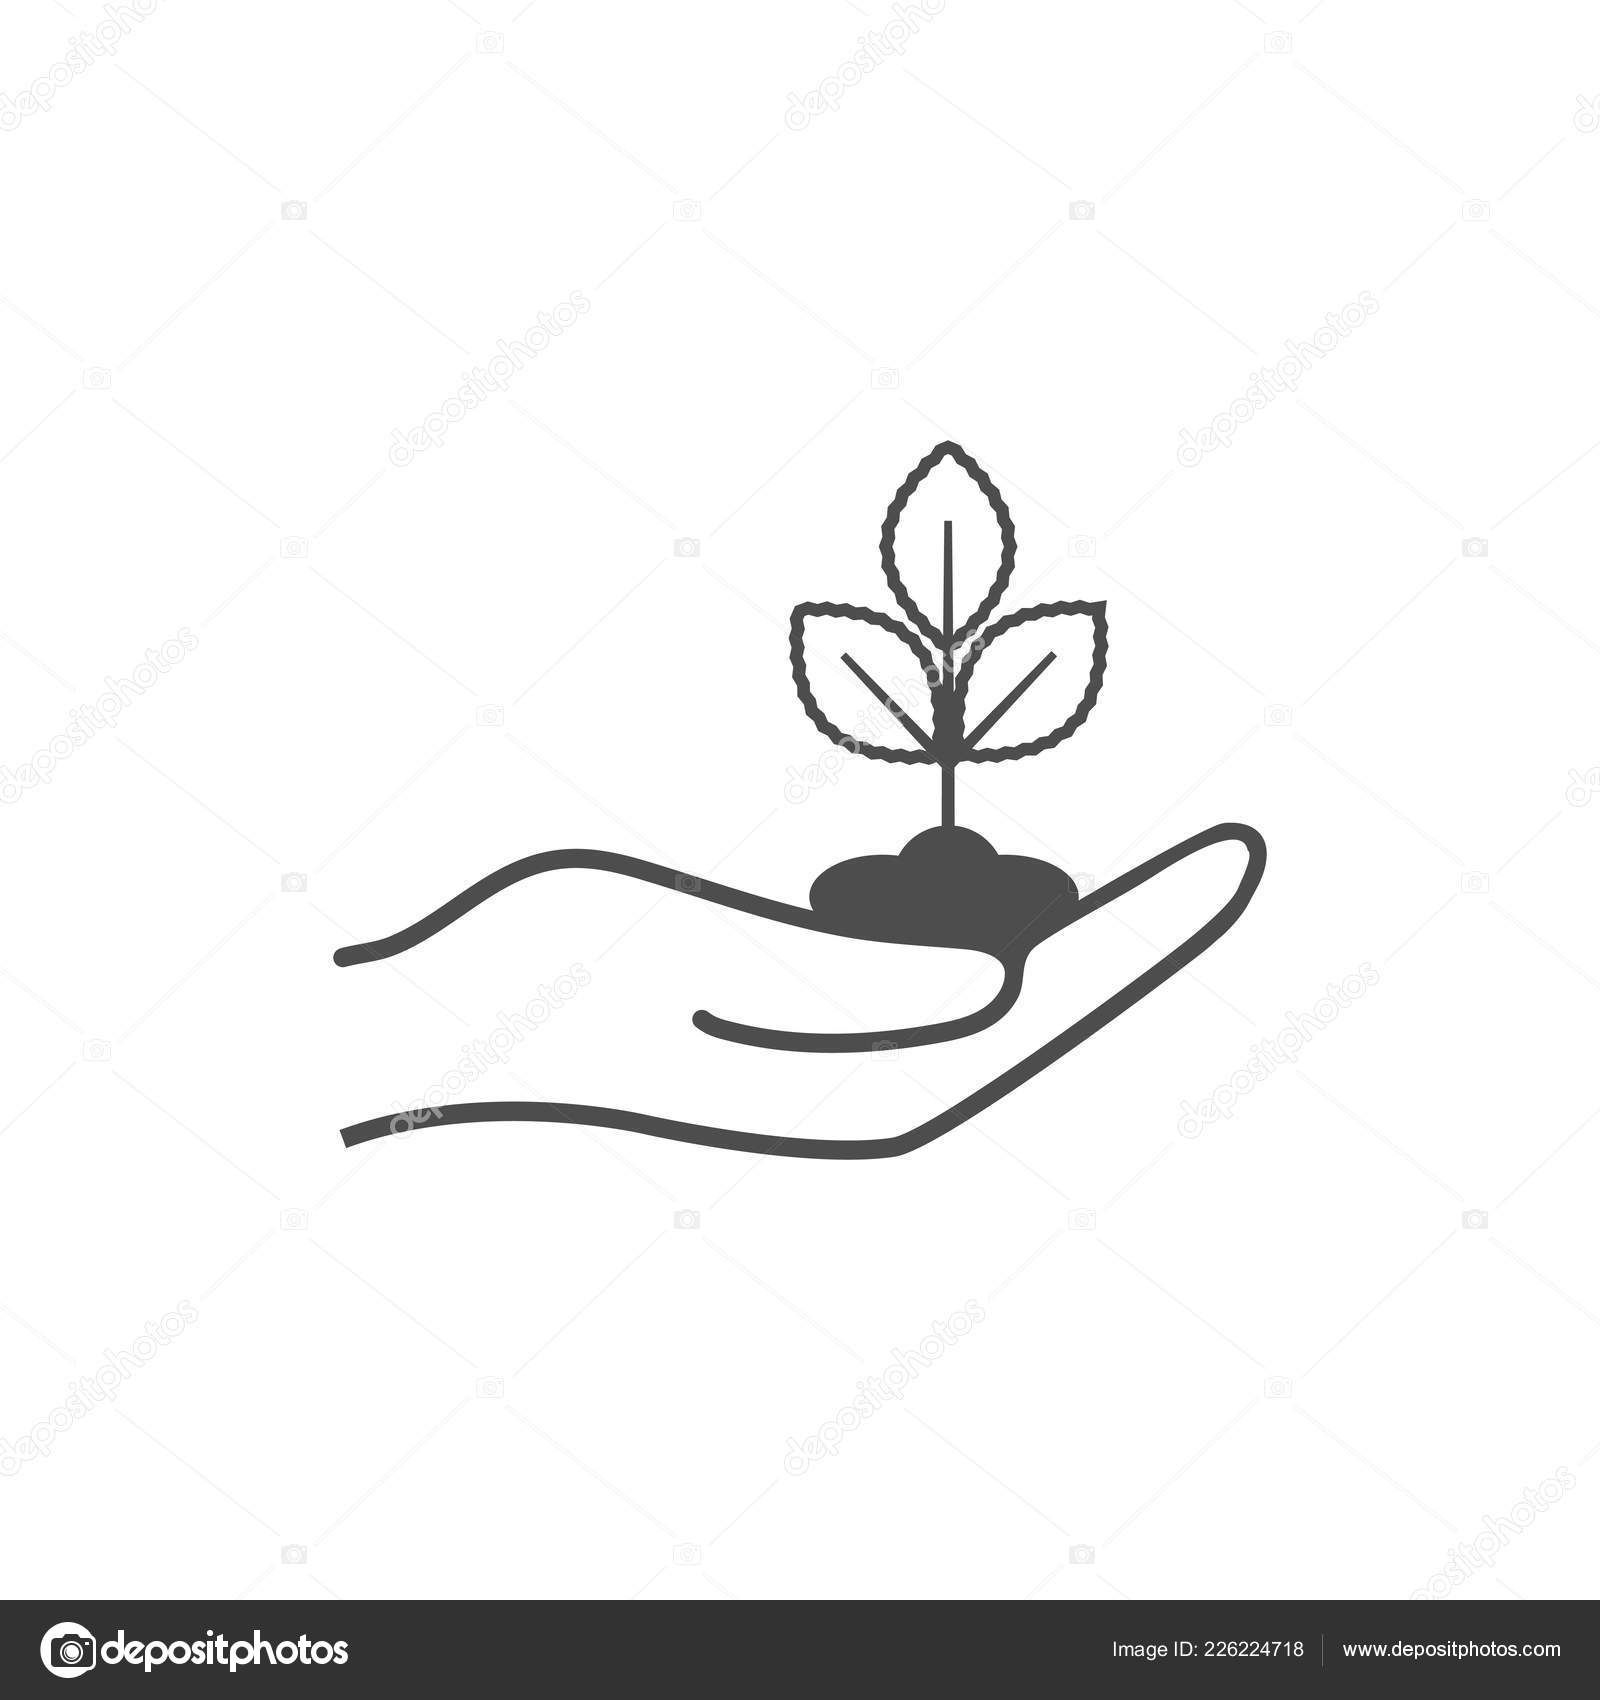 Download Sprout Hand Icon Plant Hand Stock Illustration Plant Icon Hands Icon Hand Illustration